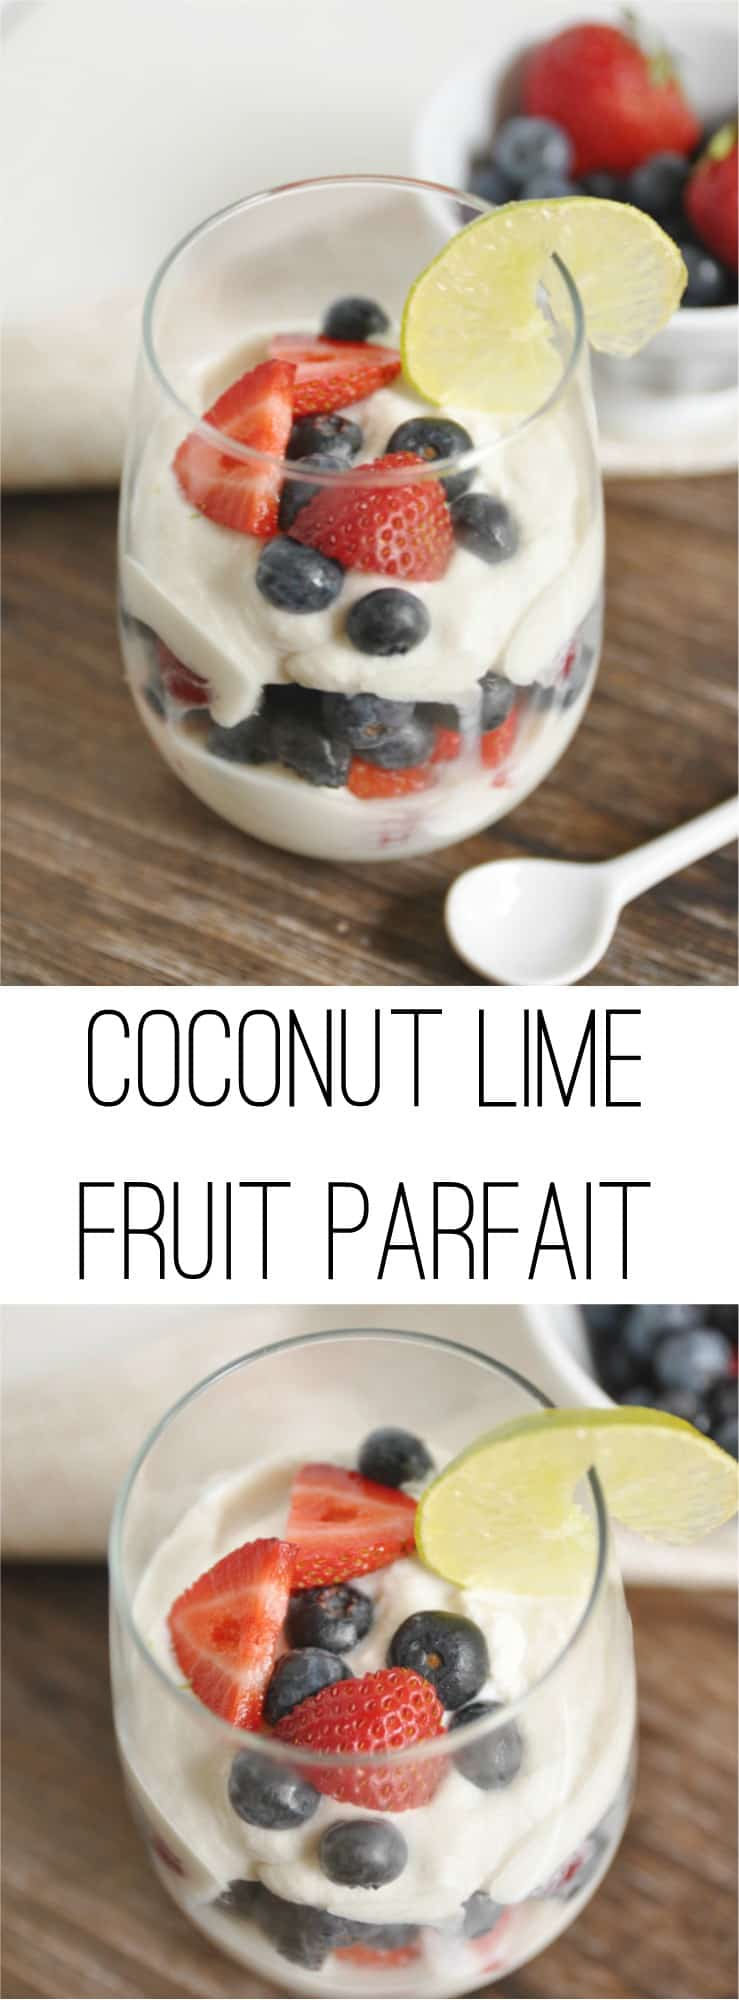 Coconut Lime Fruit Parfait